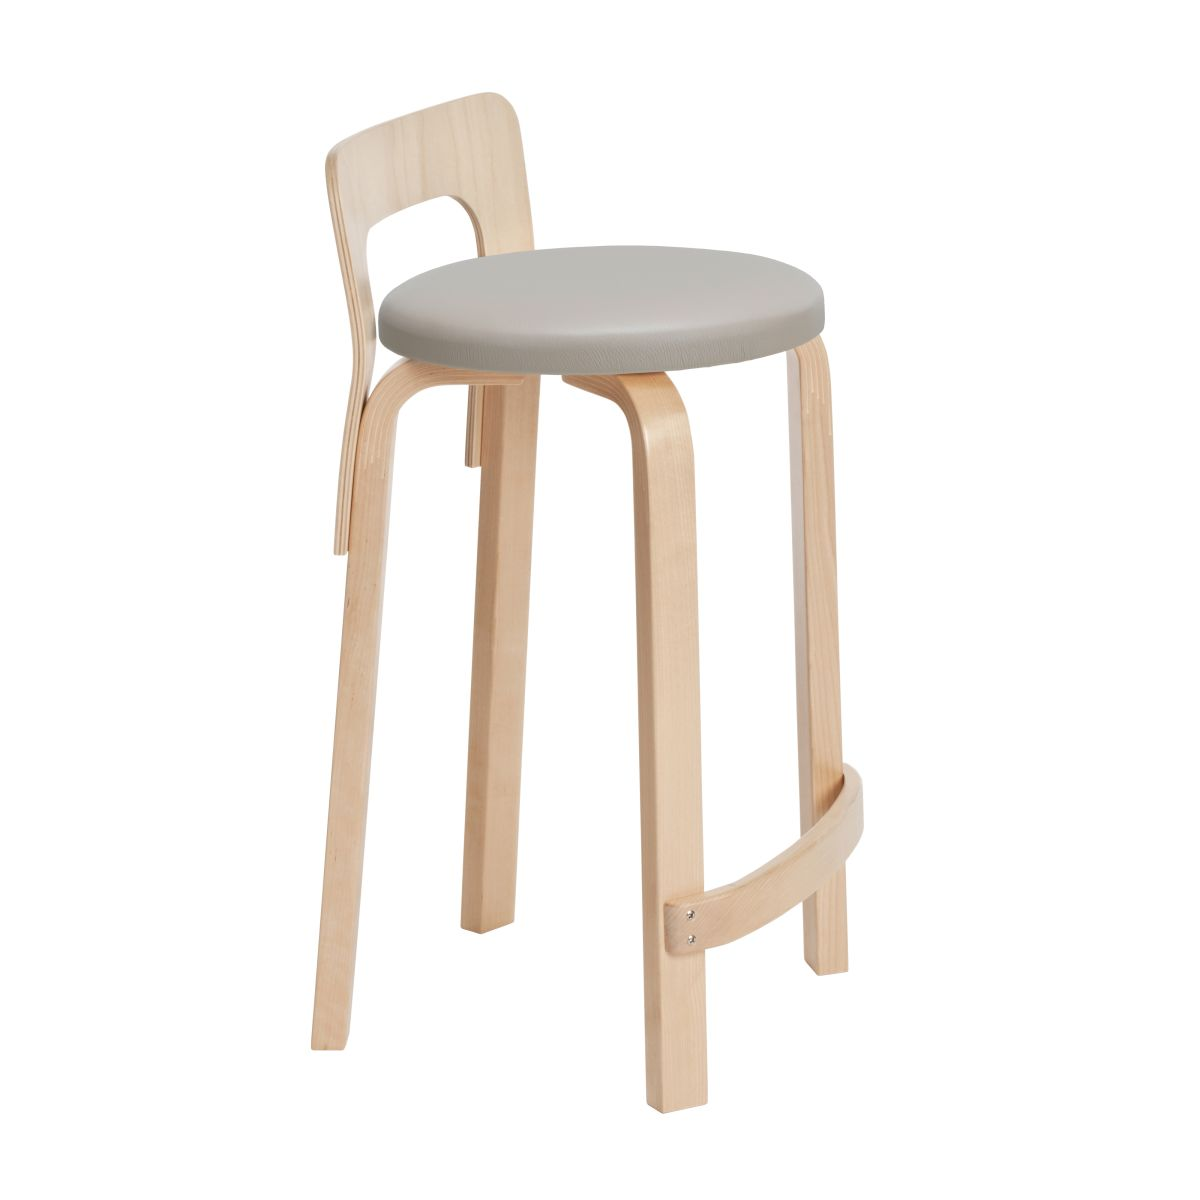 High-Chair-K65-seat-leather-upholstery-padding_F-2912733